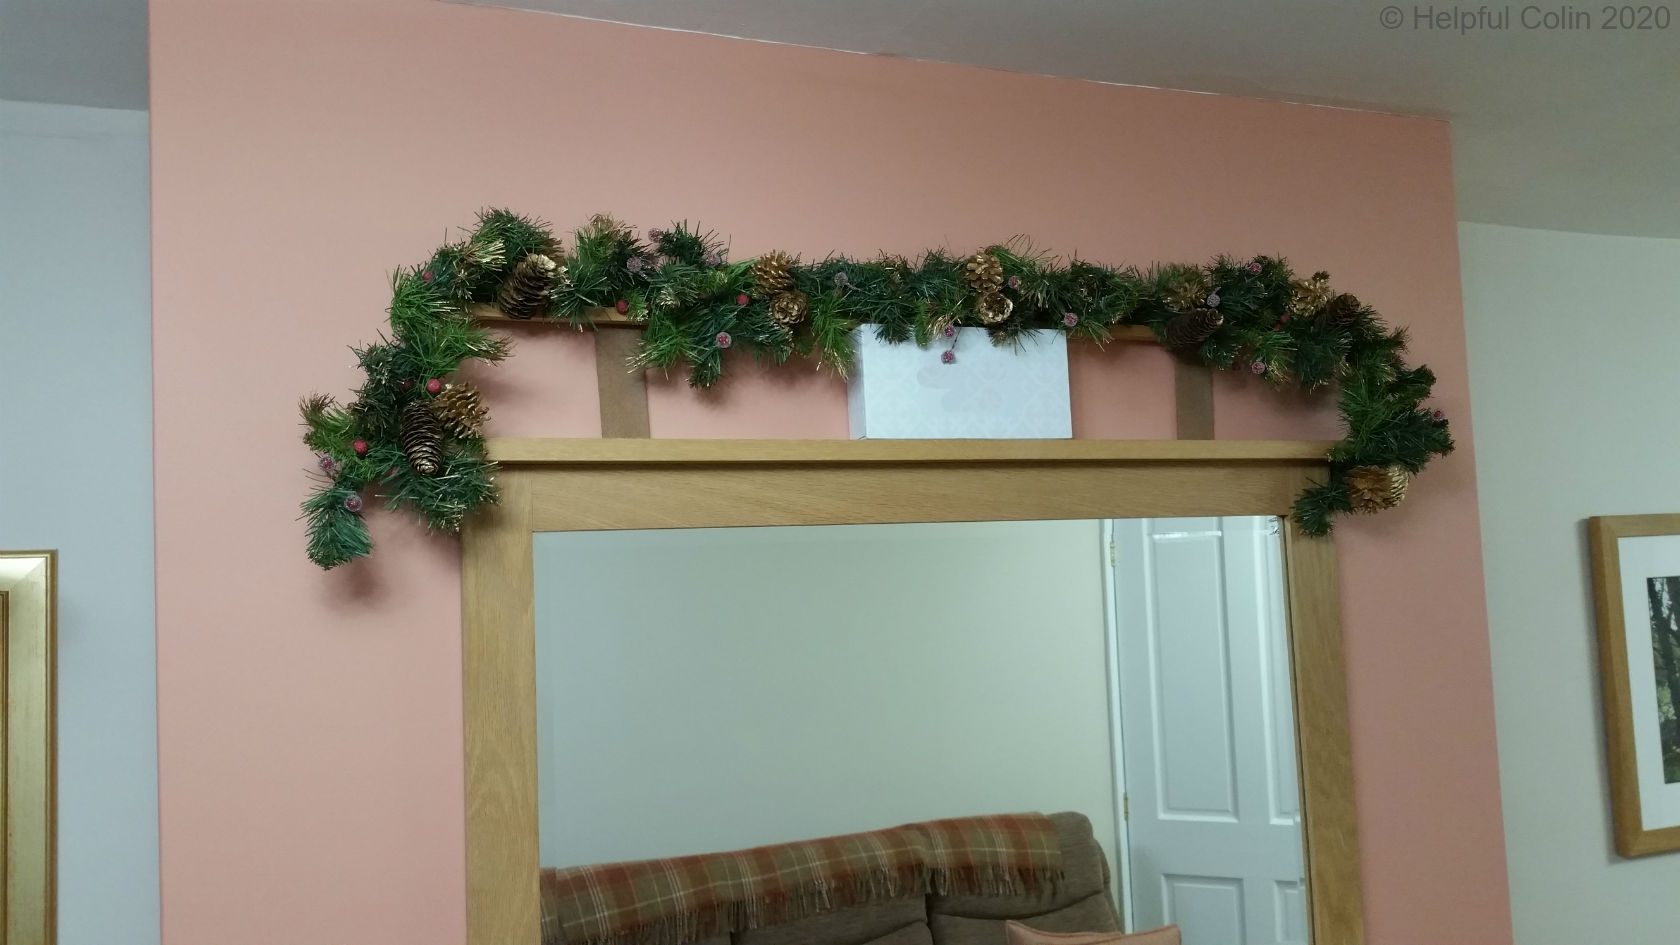 garland-frame being slotted behind a mirror